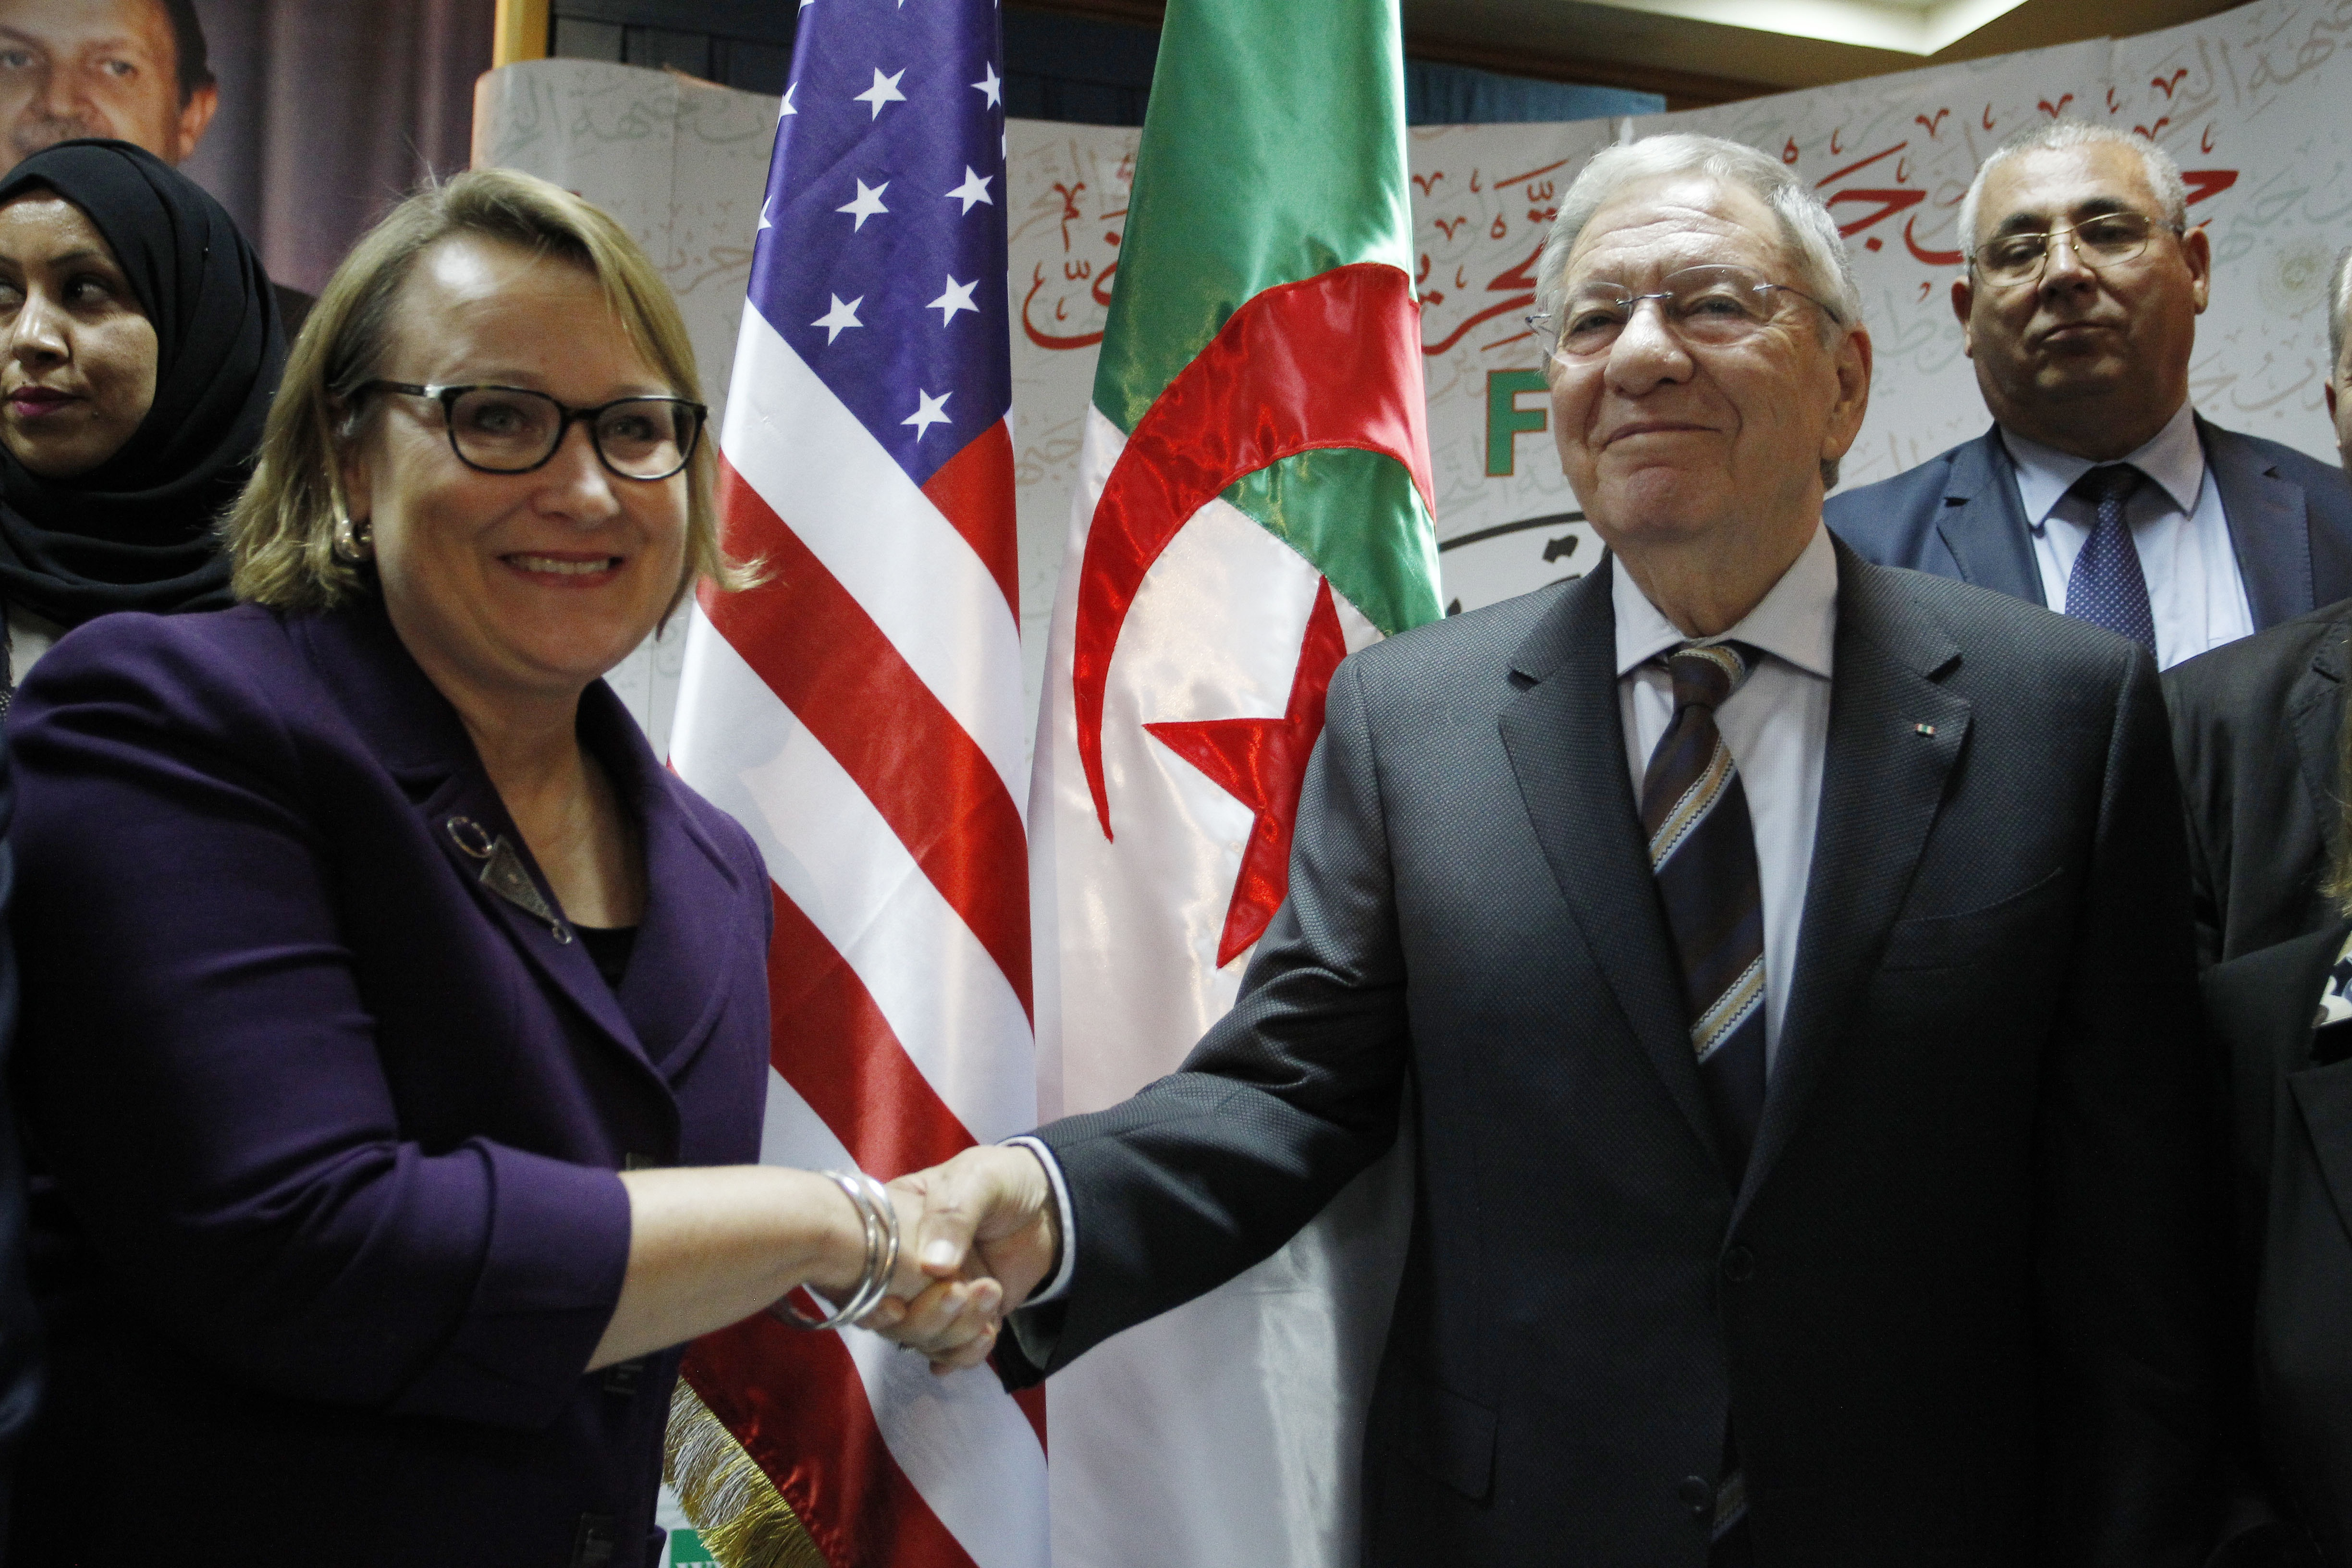 L'ambassadrice des Etats-Unis, Joan Polaschik, reçue par Djamel Ould-Abbès. New Press